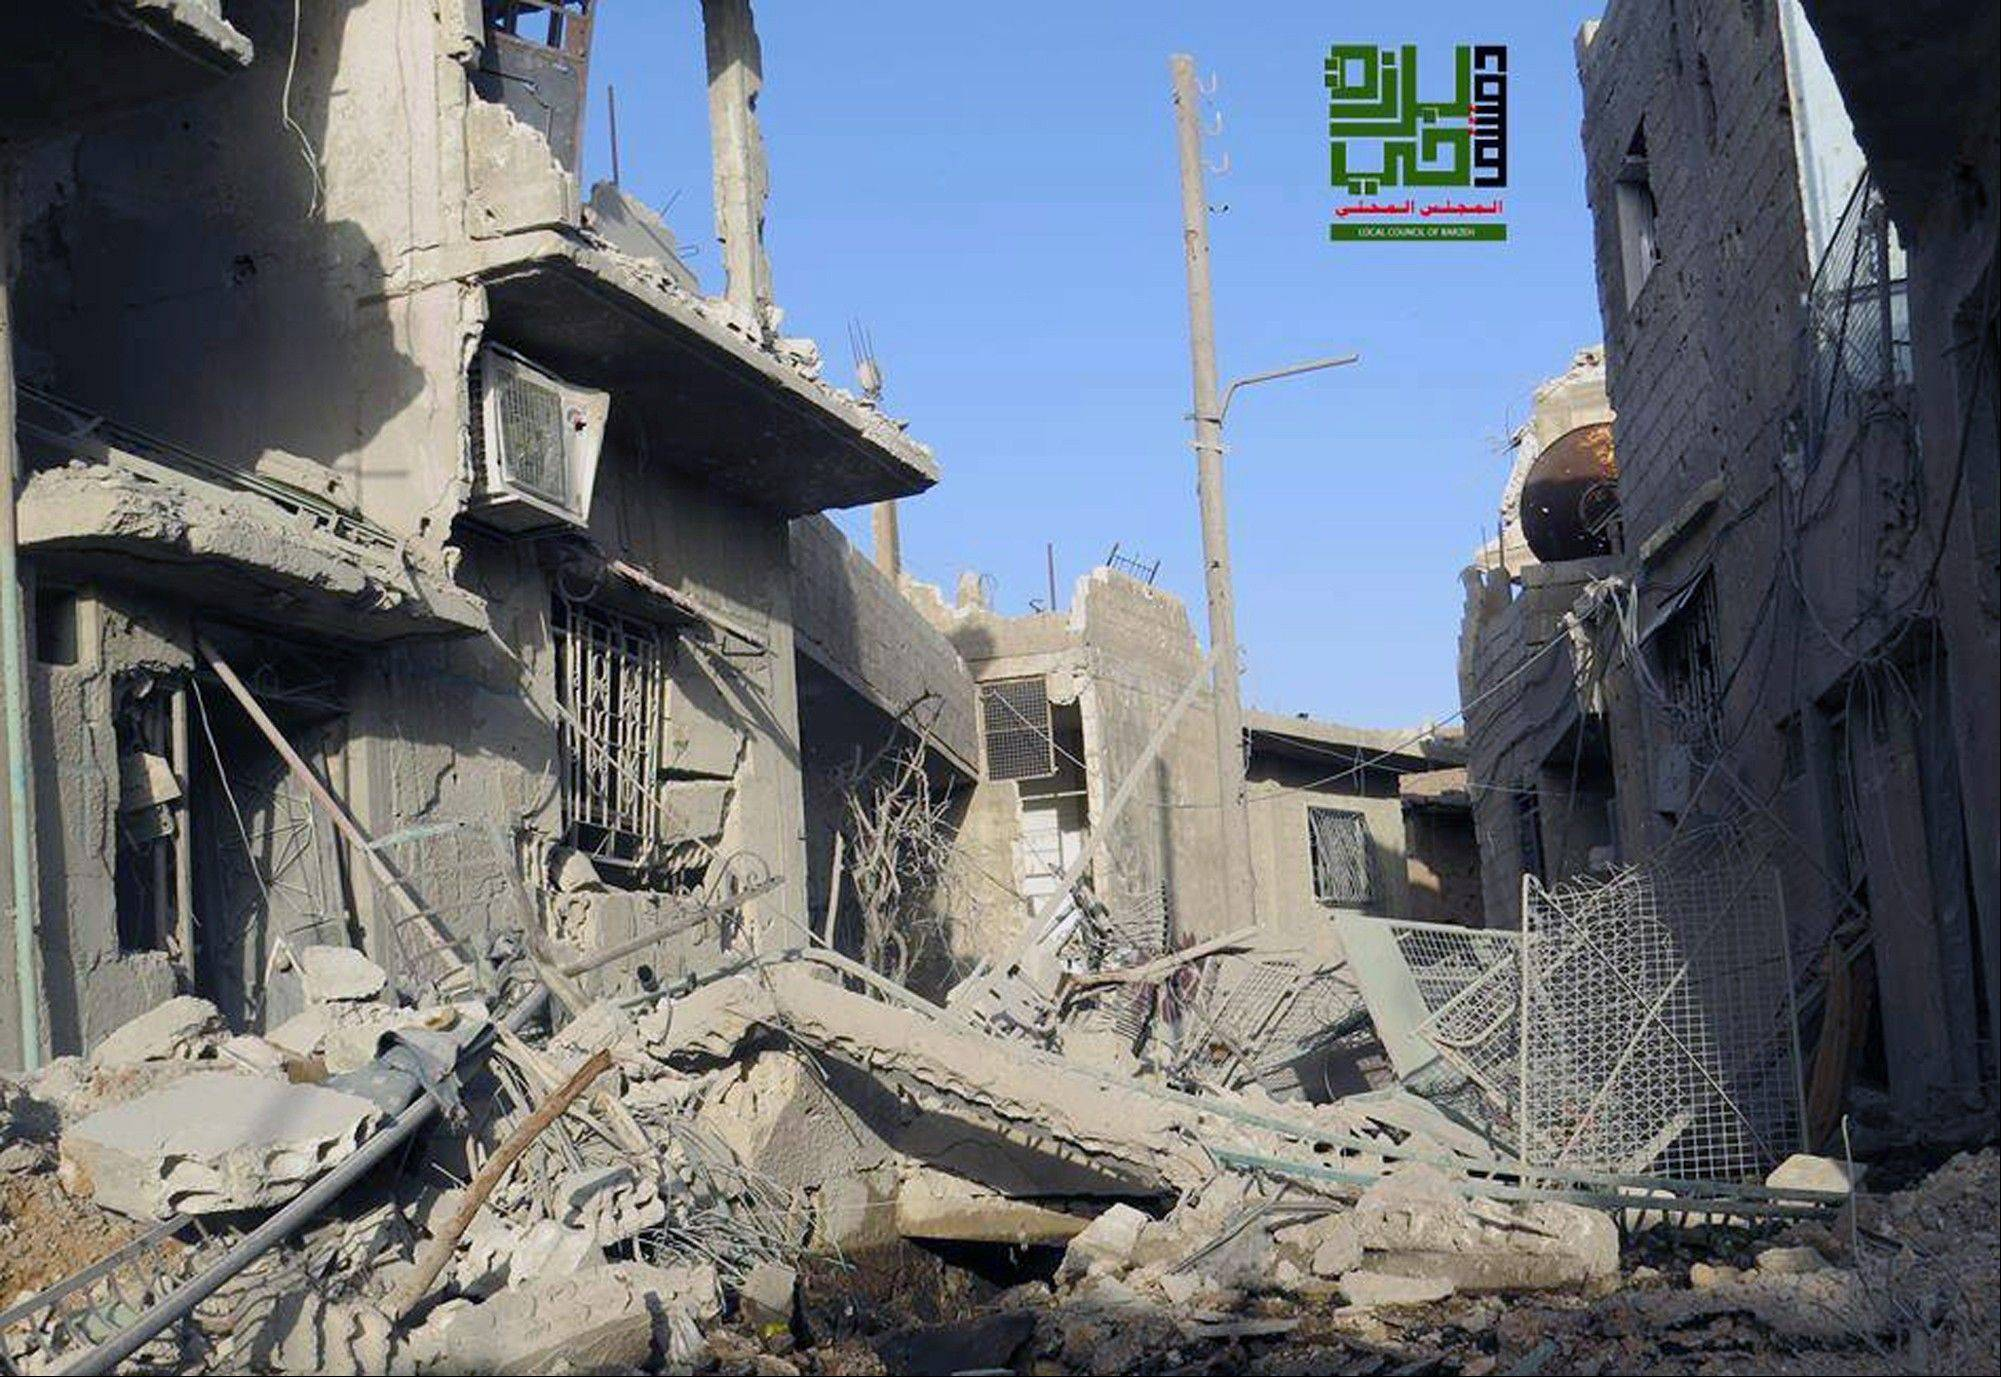 Government shelling and airstrikes have destroyed homes in the Barzeh district of Damascus, Syria.